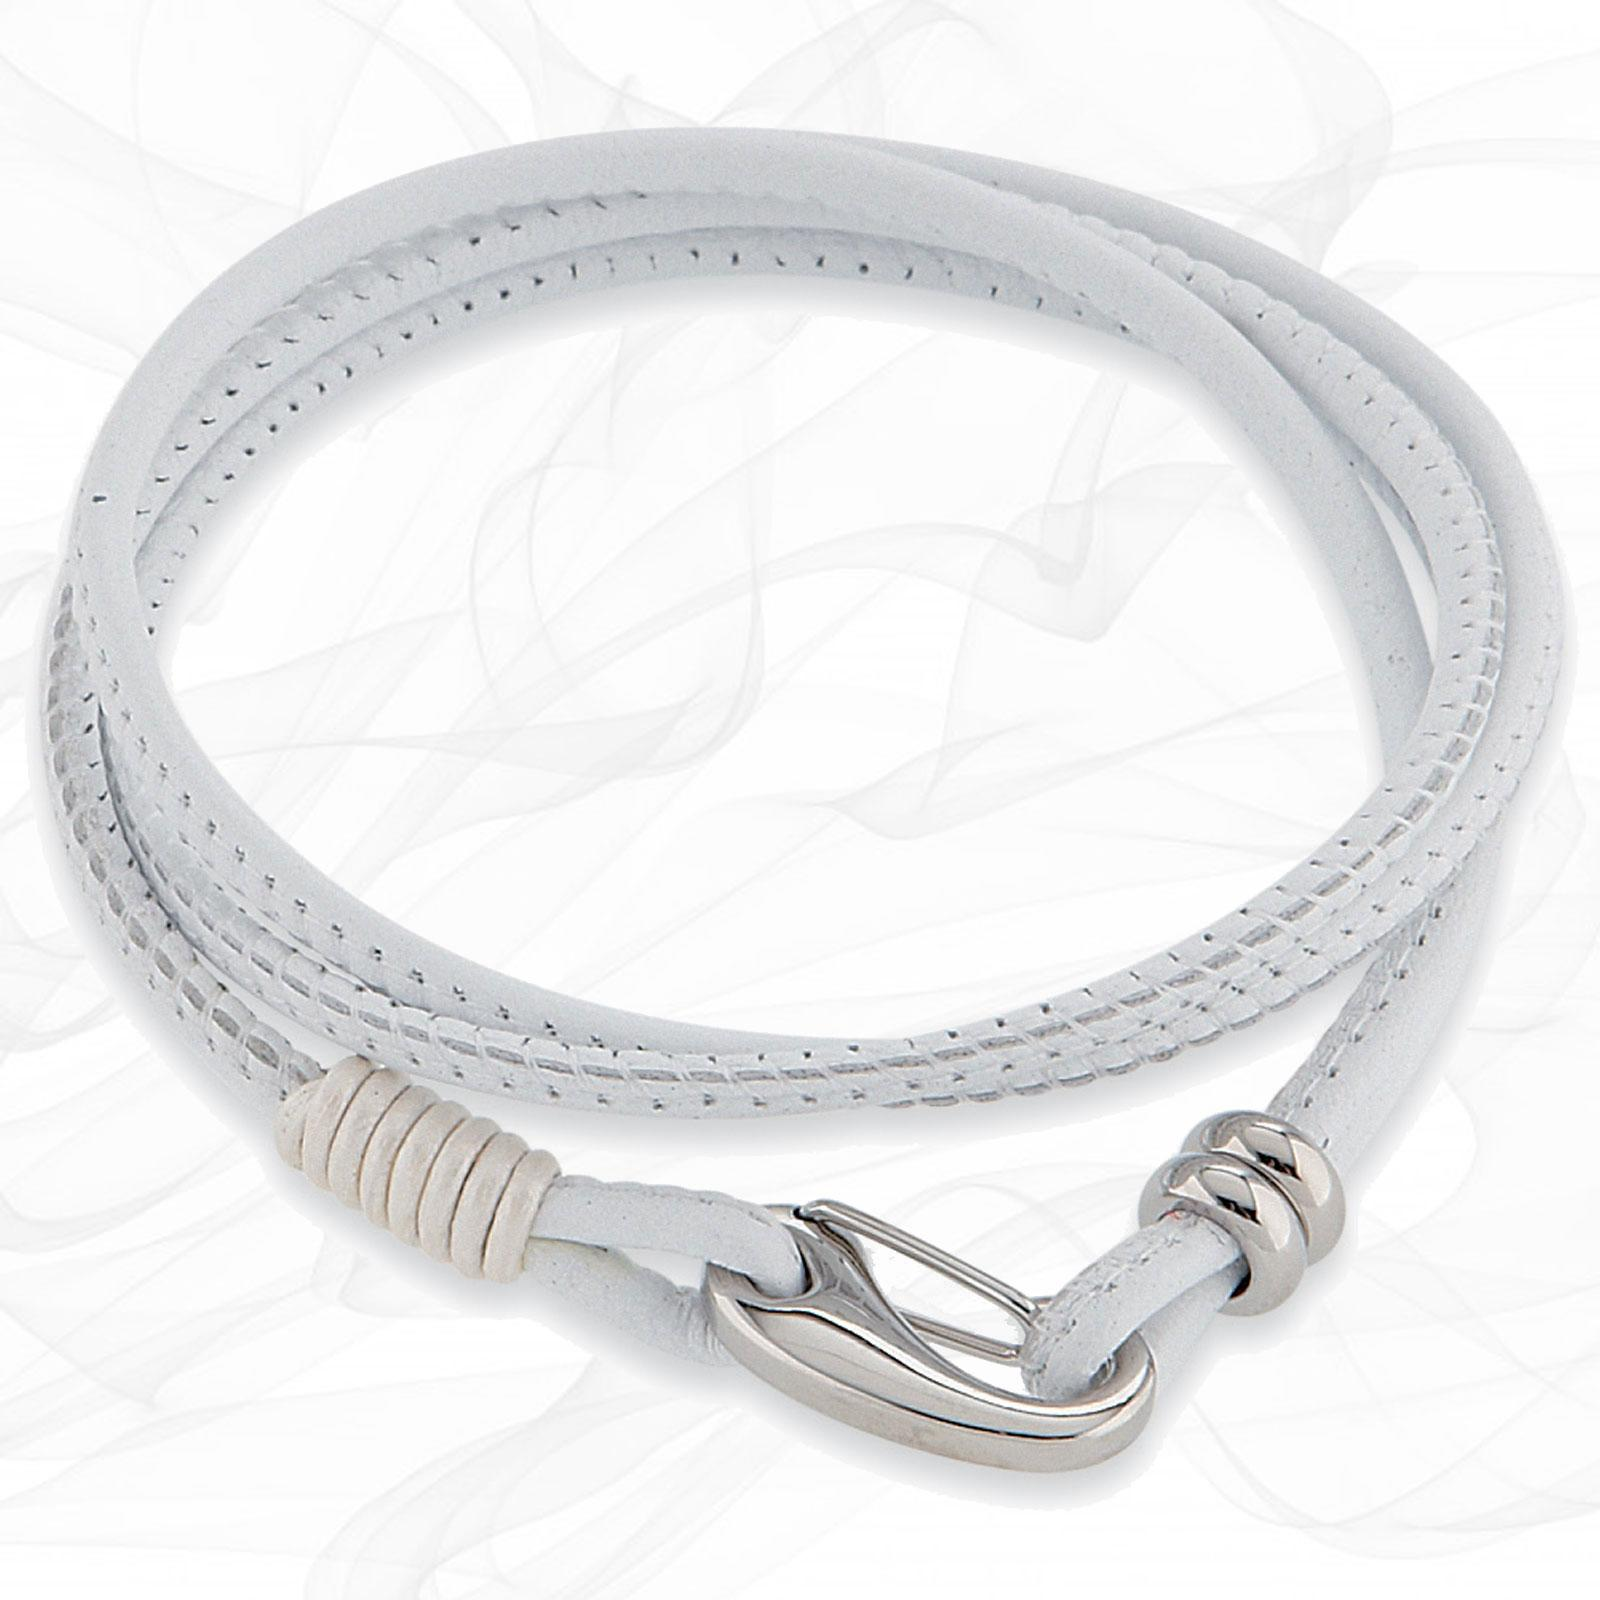 Simple White smooth 3mm Nappa Double wrap Leather Bracelet for Women